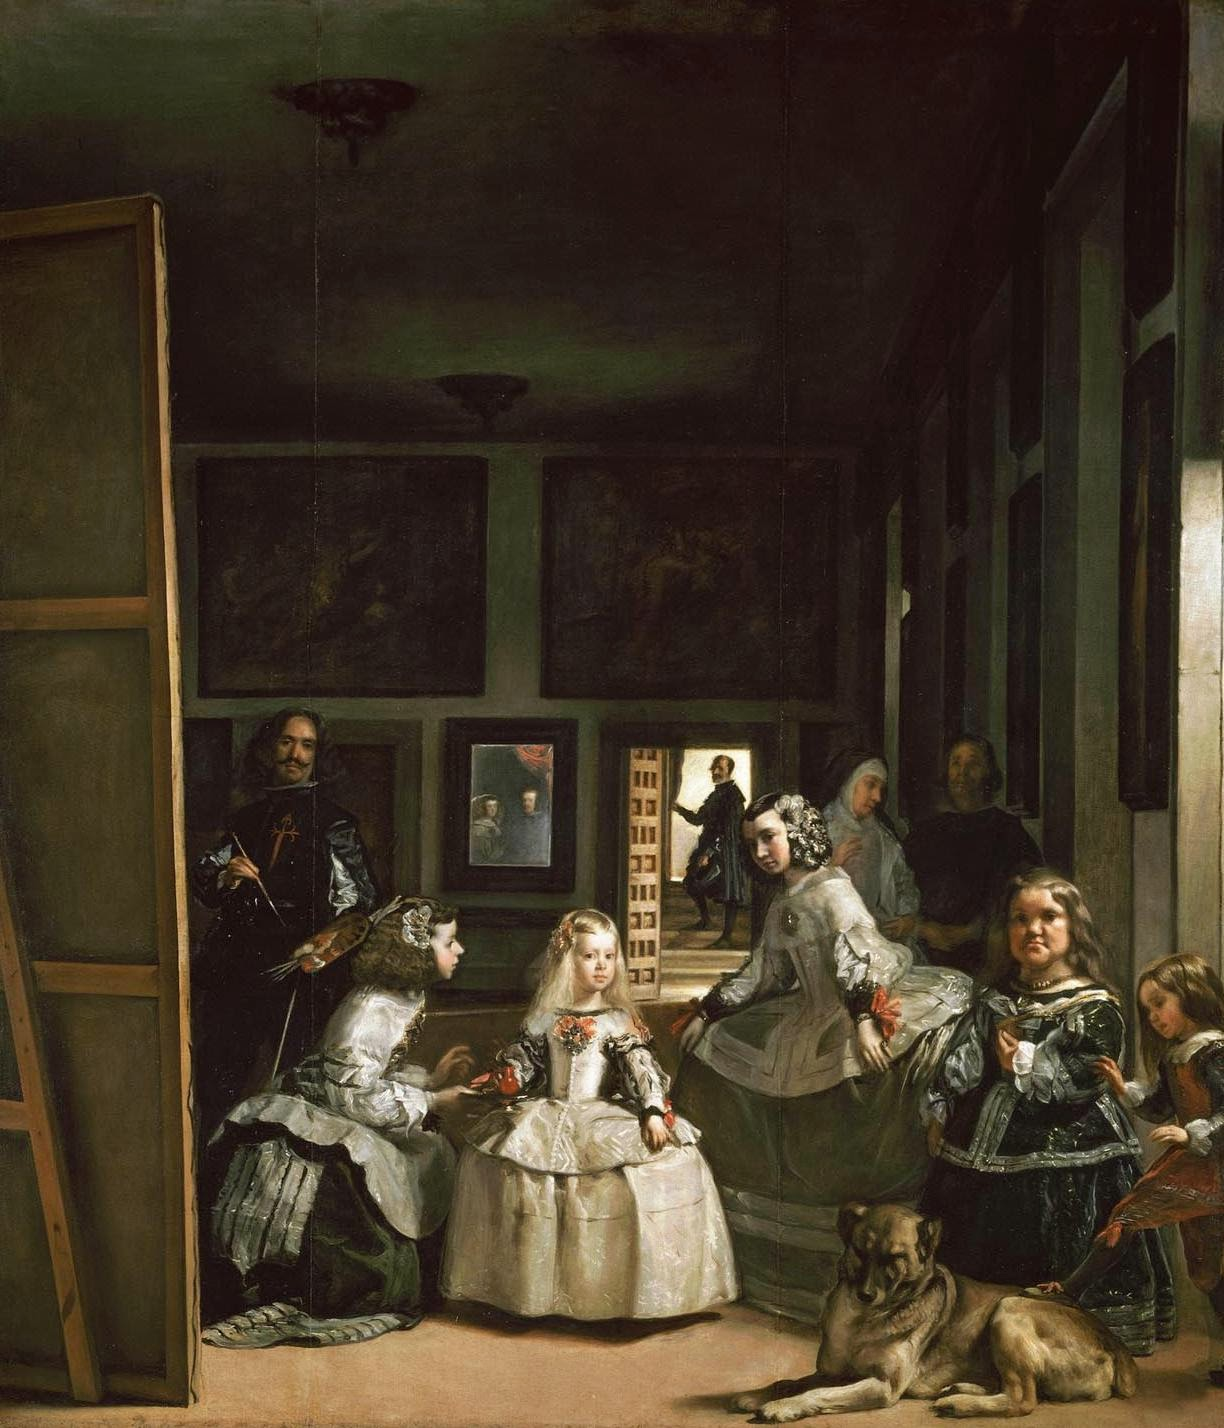 El primer selfie de la Historia - 1st selfie ever! - Las Meninas - Velázquez - el troblogdita - ÁlvaroGP - Director General IAA-Spain - Asociación Internacional de Publicistas - International Advertising Association